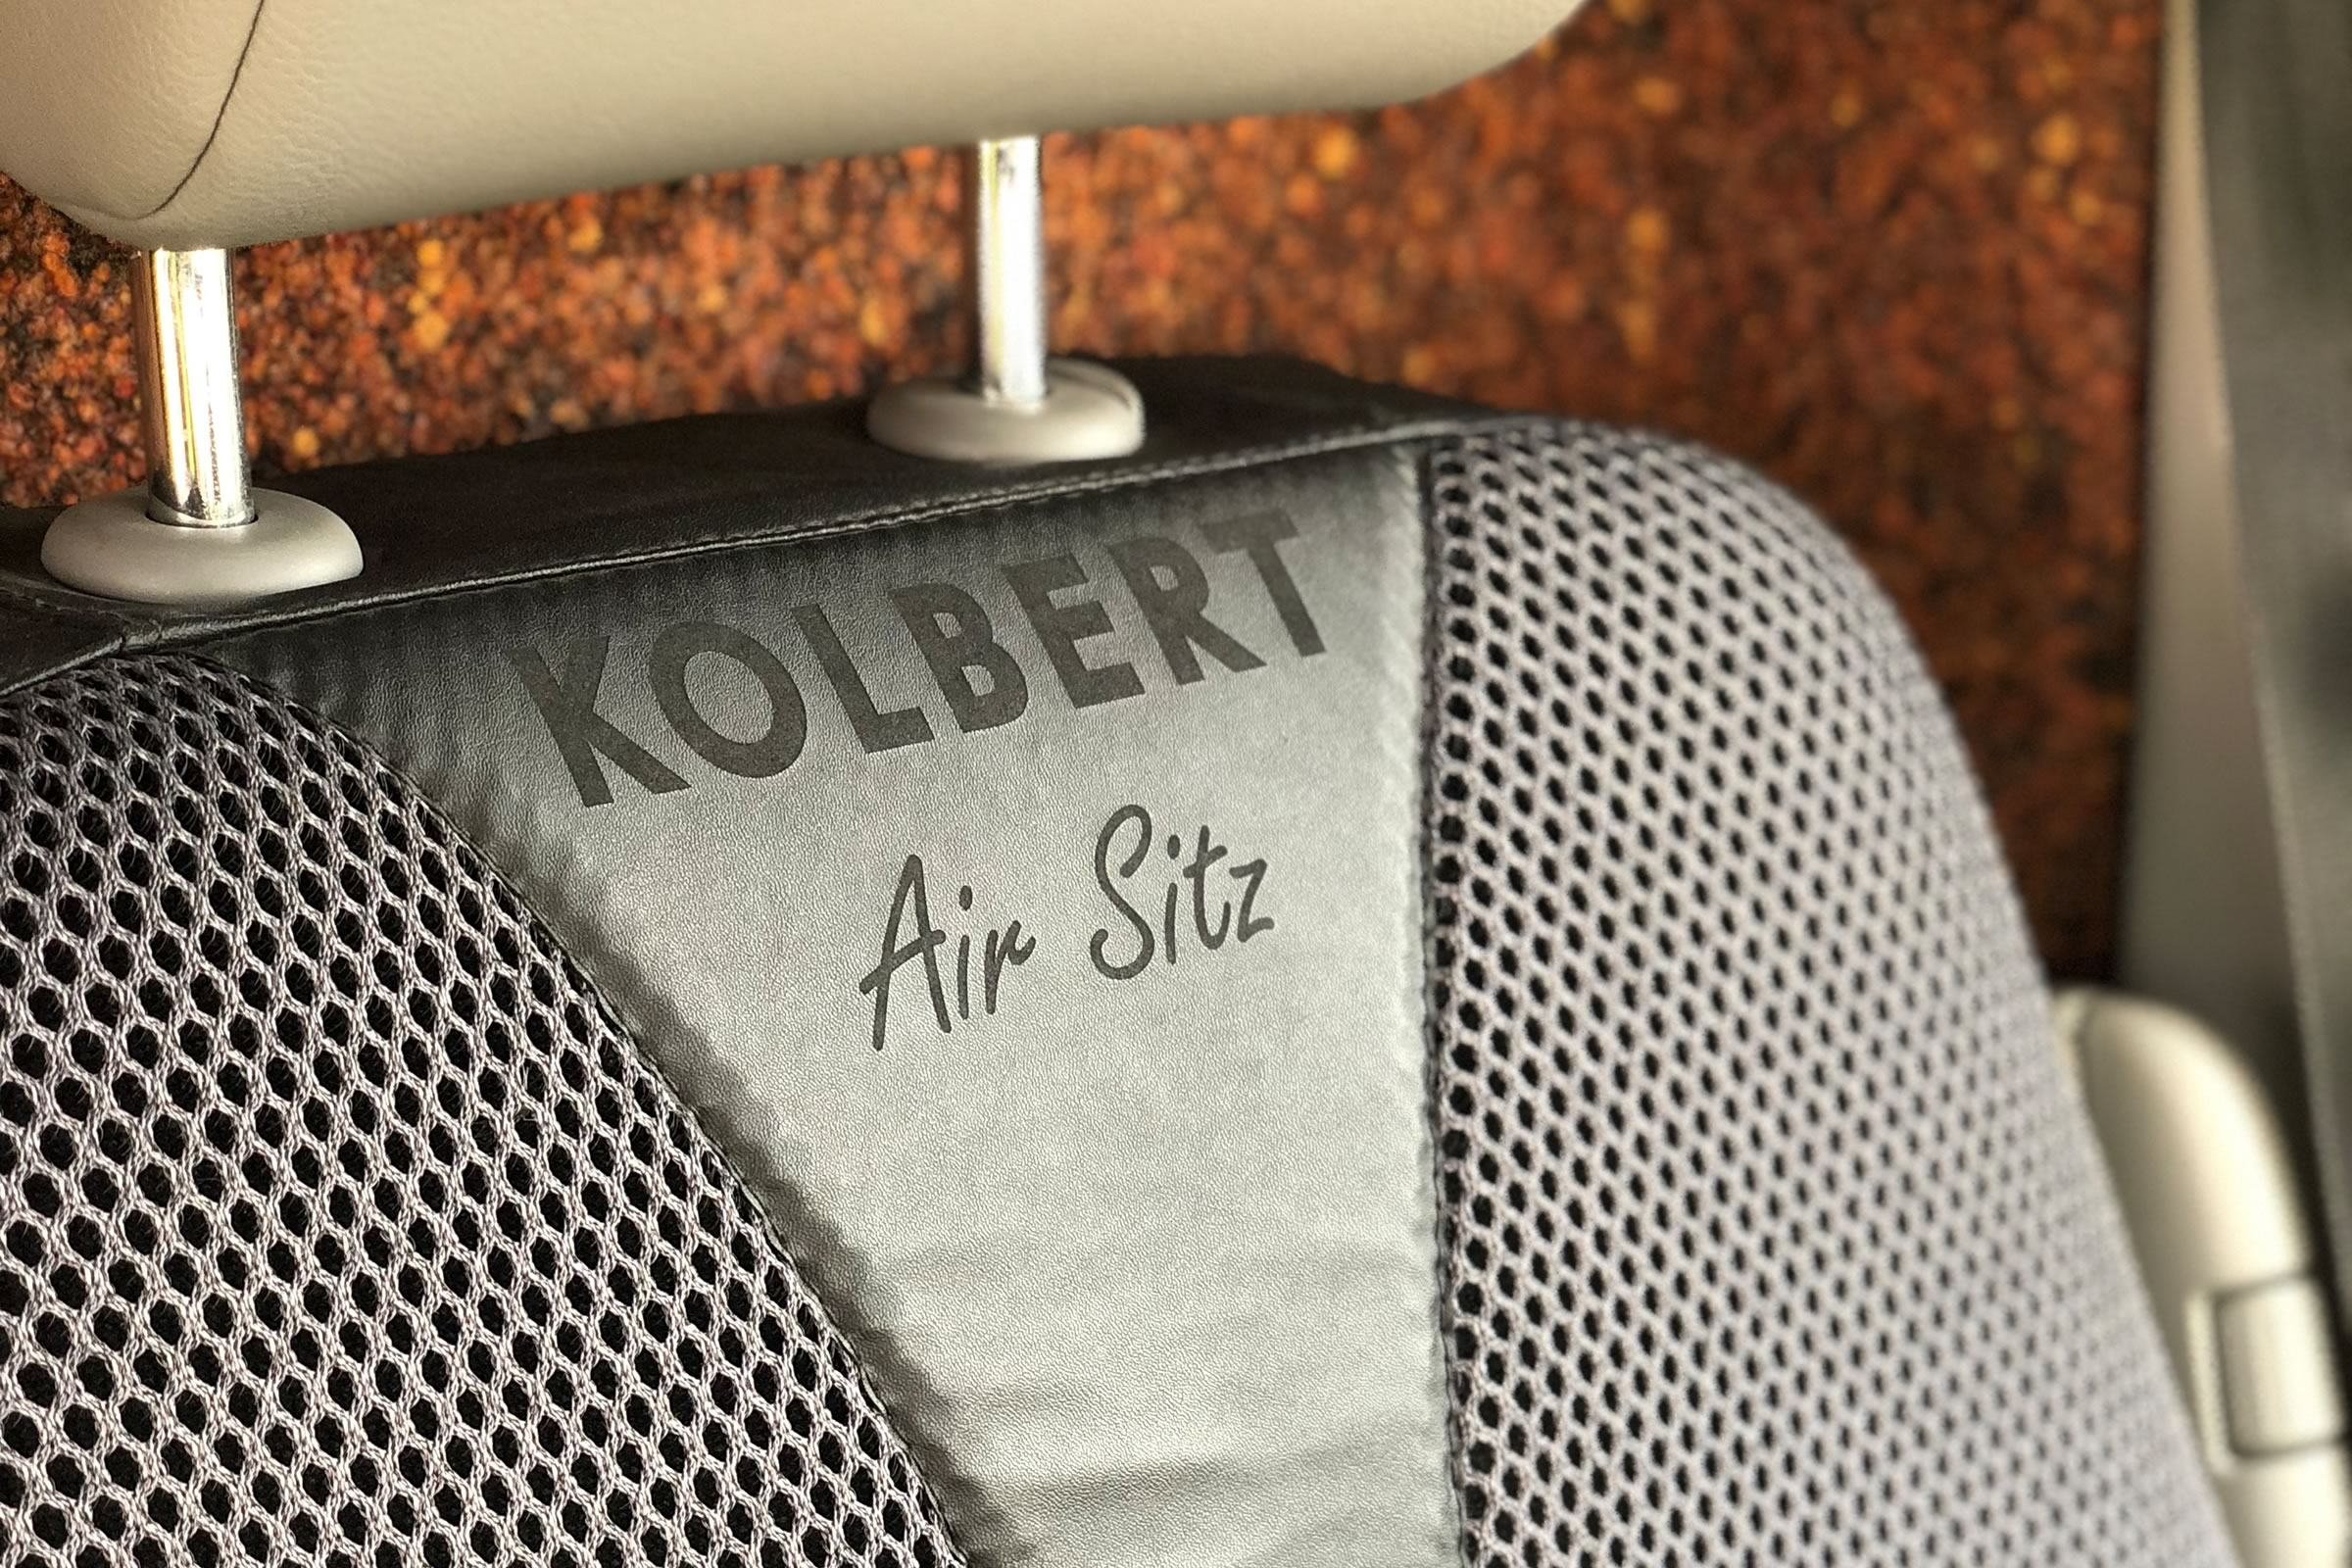 Kolbert Air Sitz